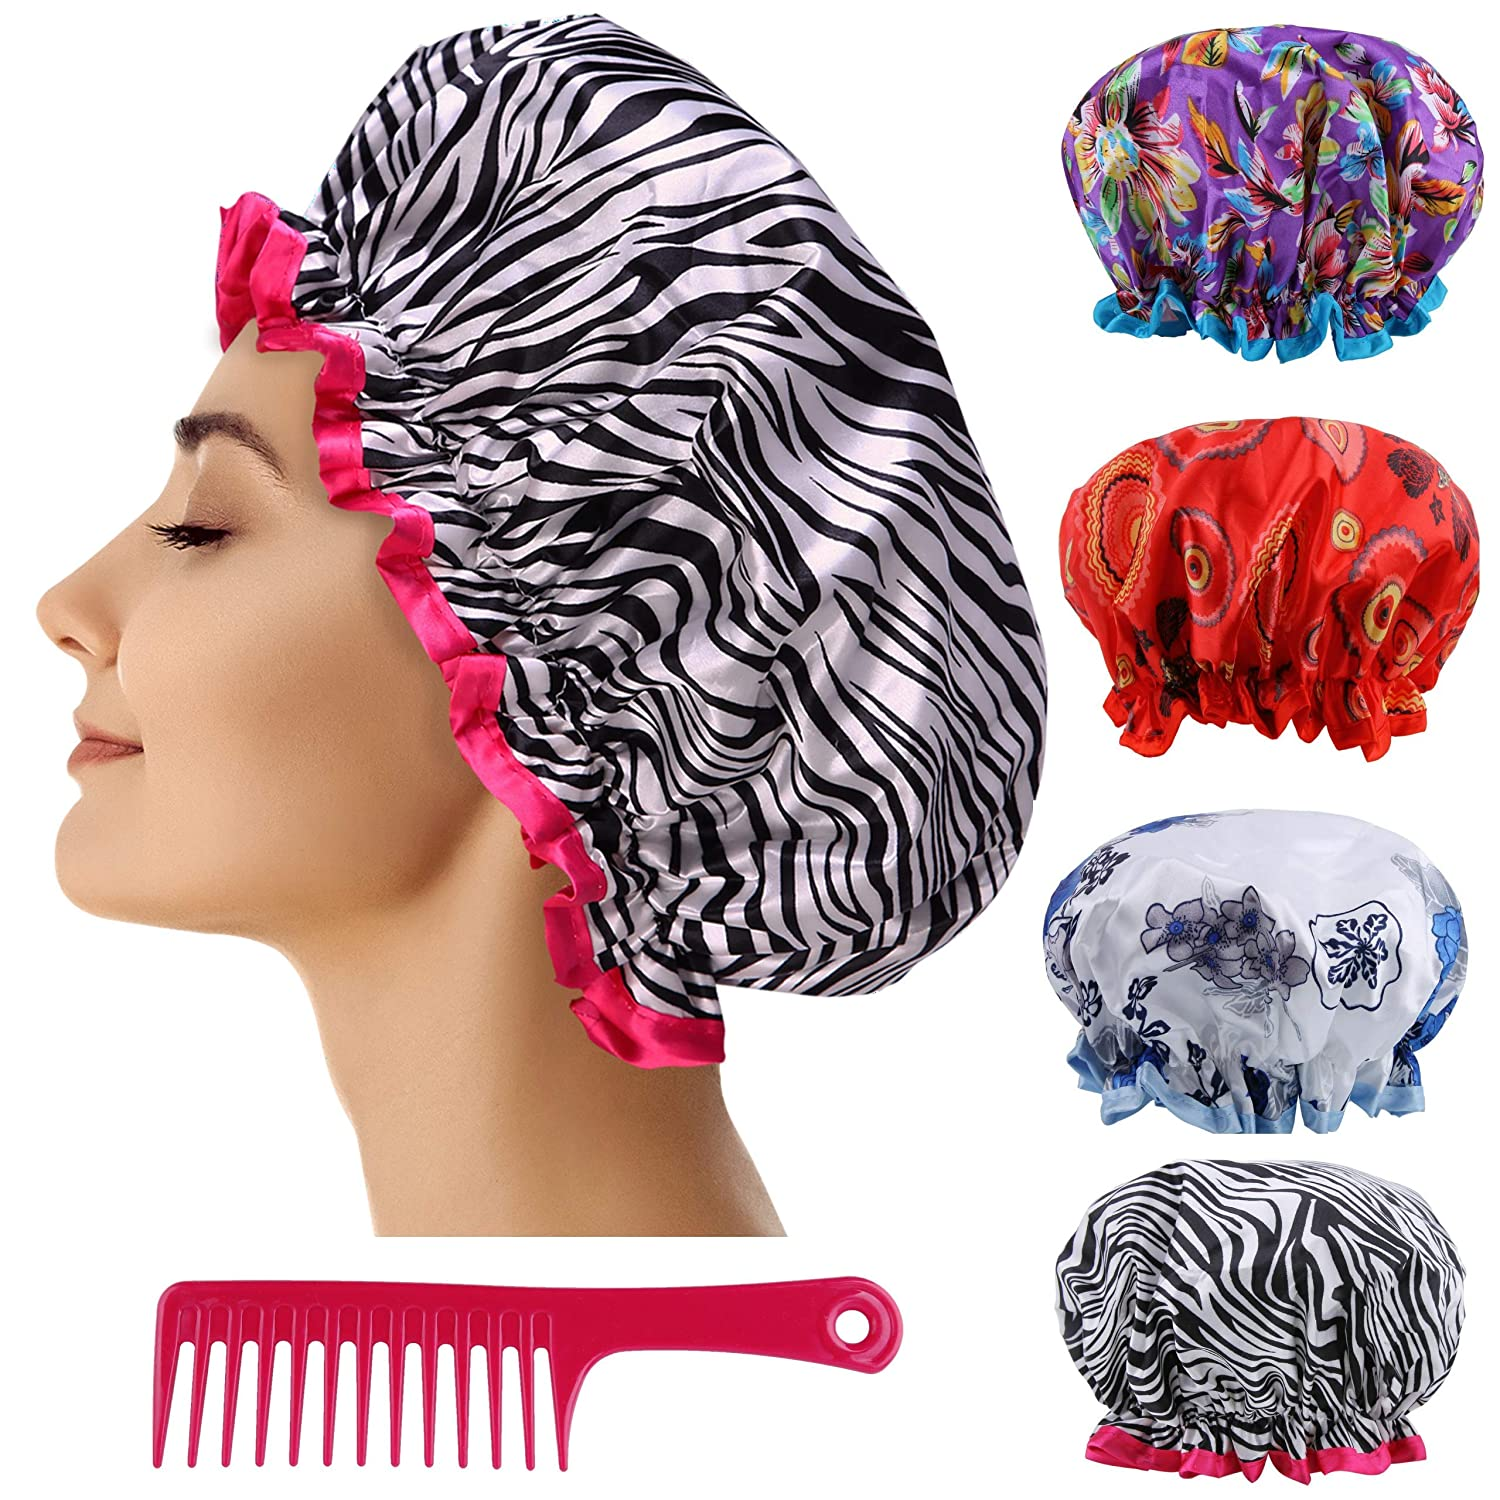 Reusable Shower Cap Women Hair - 4 Pack Showe 2021 spring and summer Limited price new of Lined Plastic